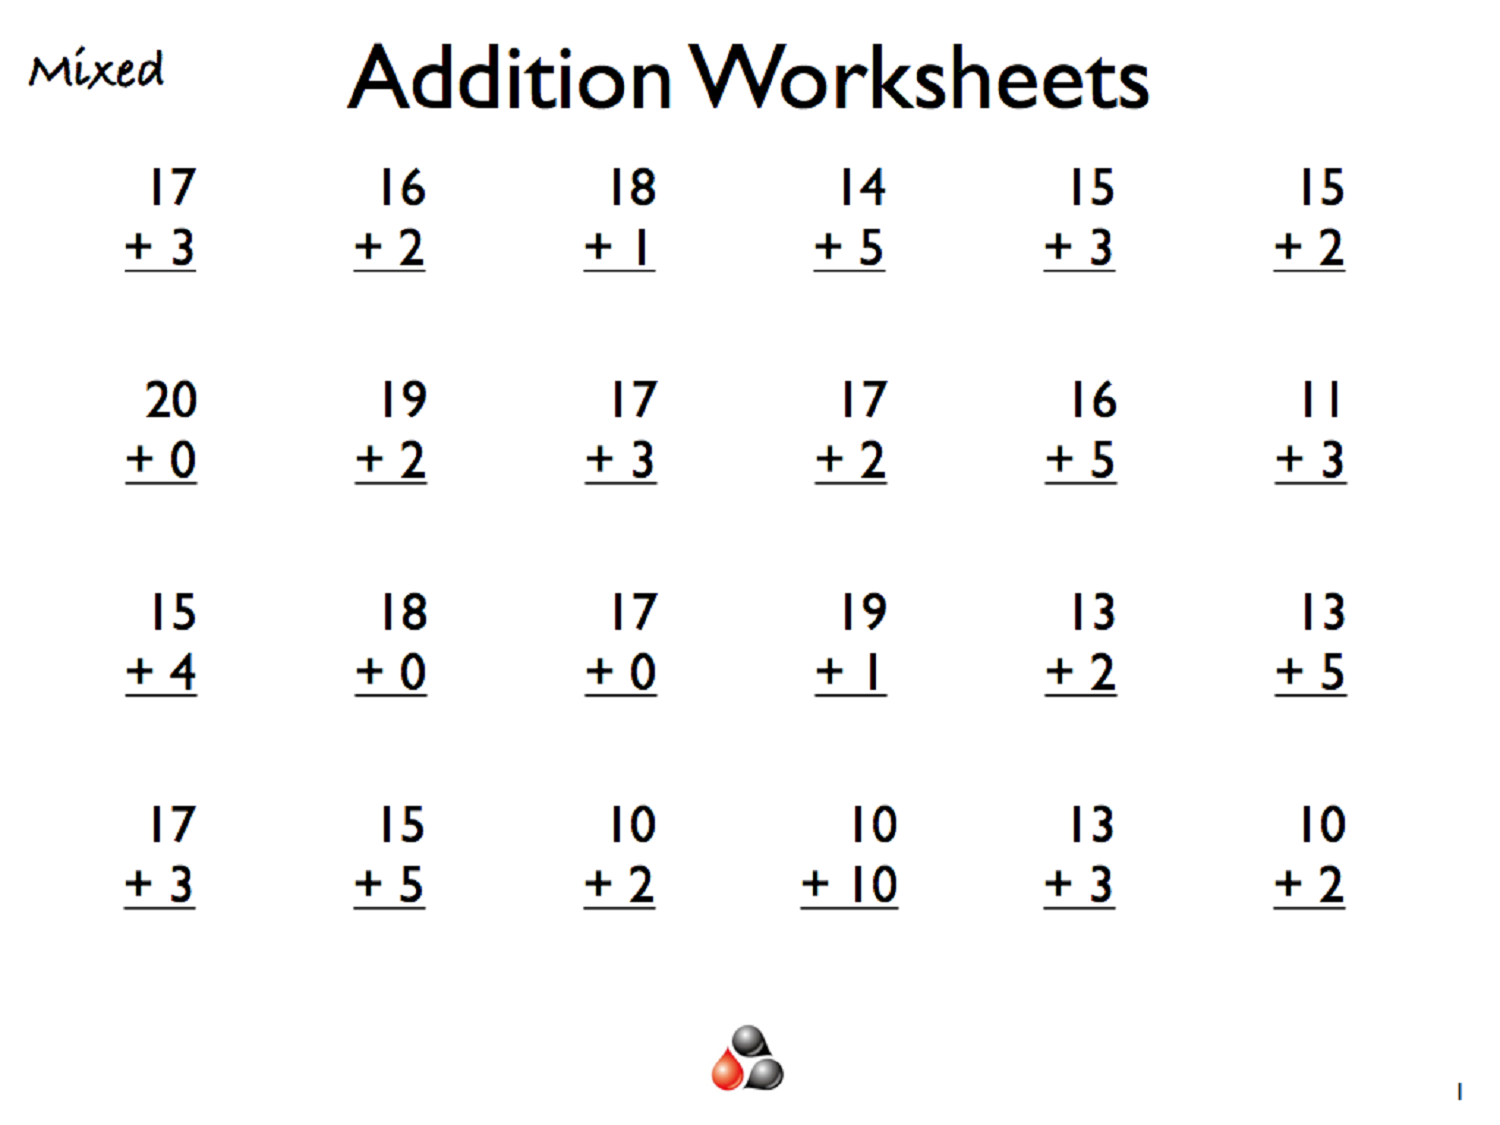 Worksheet Year 1 Addition Worksheets worksheet addition exercises for grade 1 mikyu free 1000 images about kids activity math on pinterest practices sheets